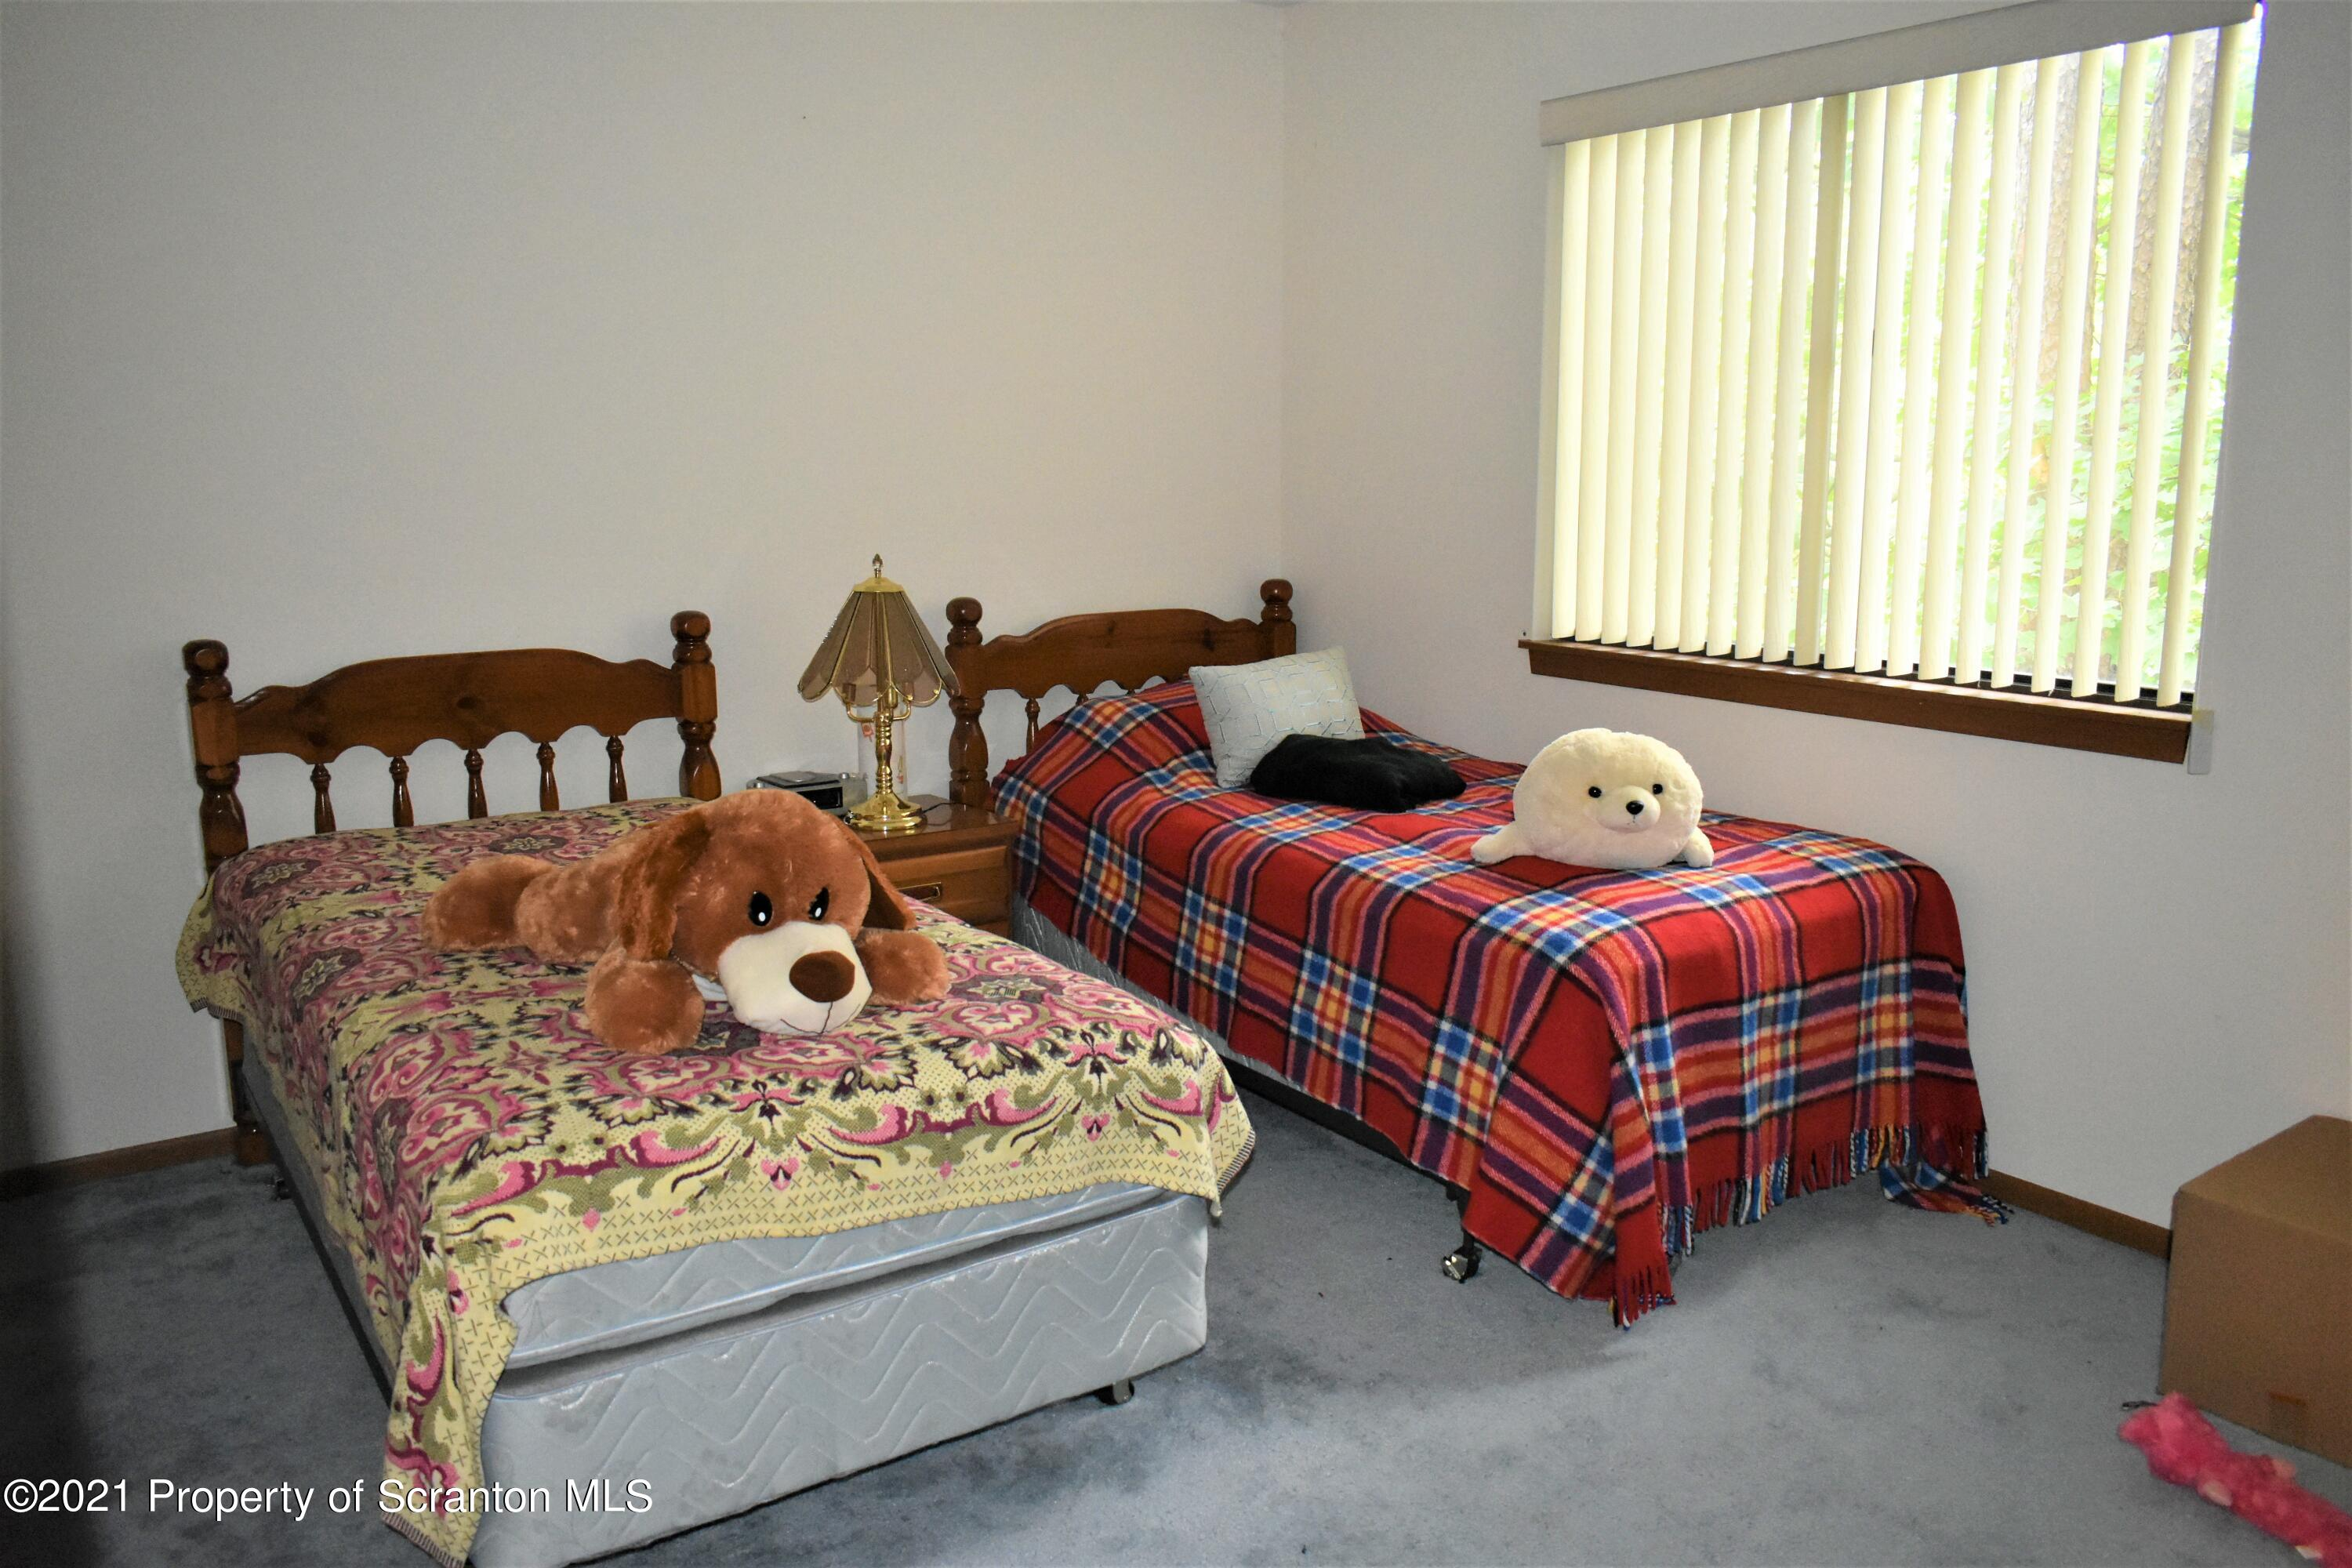 BEDROOM PRIMARY PIC 2